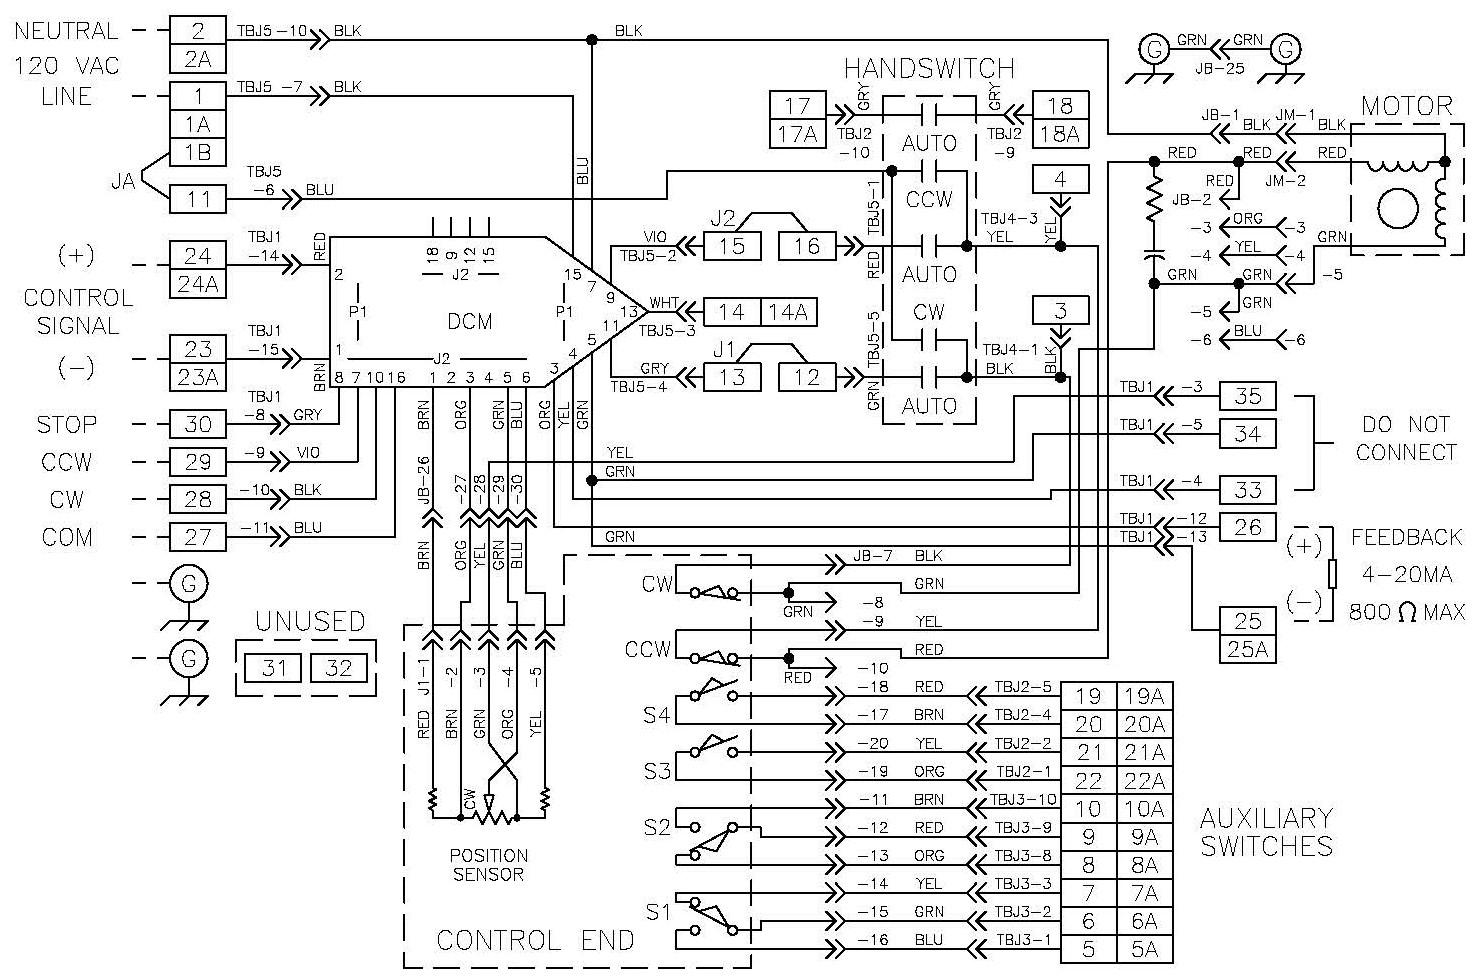 CONTROL OPTIONS - Group 75 - Beck Electric Actuators on 4 wire parts, 02 sensor wiring diagram, delta diagram, 4 wire gauge, three phase diagram, 4 wire service entrance wiring, 208v diagram, cat 3 cable wiring diagram, oxygen sensor diagram, 50 amp diagram, 480 volt diagram, lan diagram, rs232 diagram, 4 wire color, 4 wire circuit, 7 wire diagram, 3 wire diagram, grounding diagram, 4-way trailer light diagram, single phase diagram,